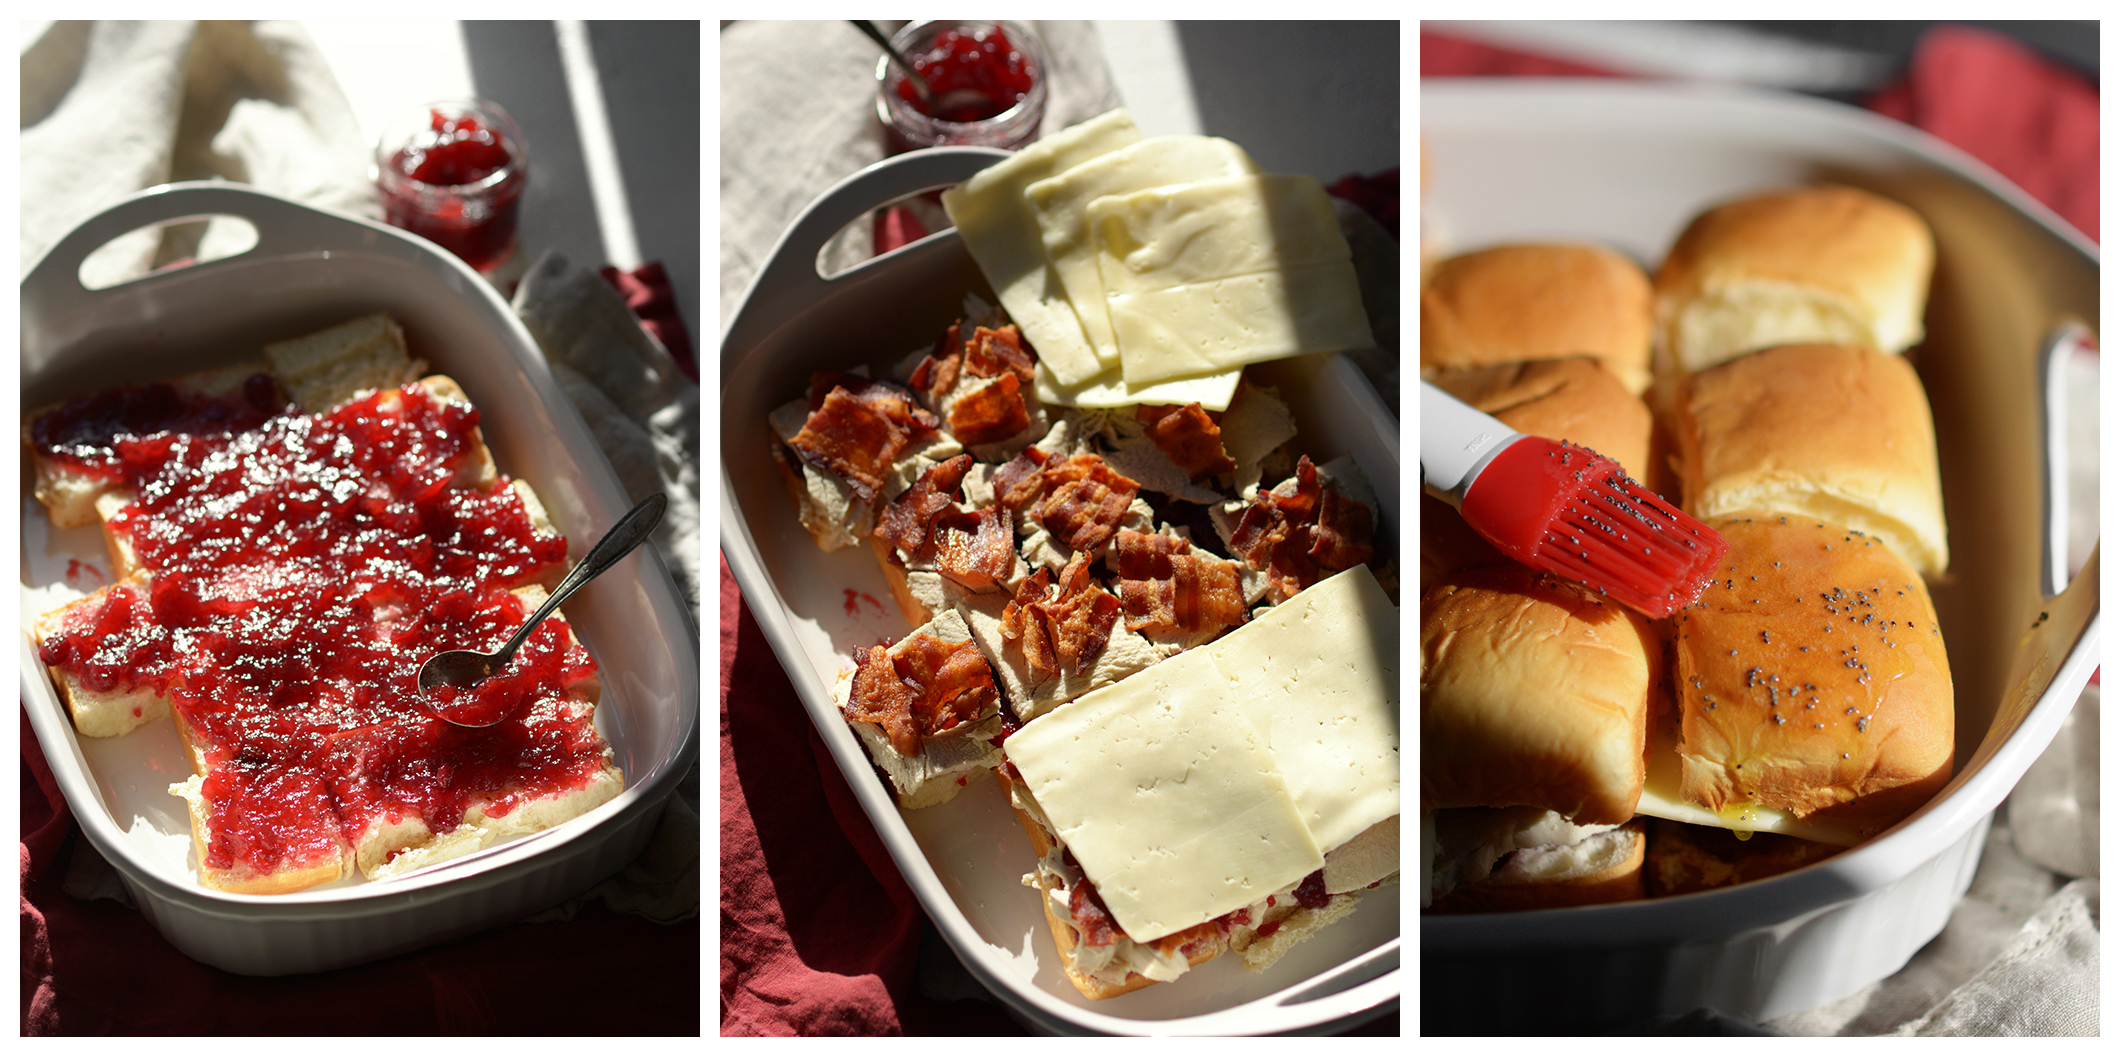 How To Make Cheese Cranberry Turkey and Bacon Sliders